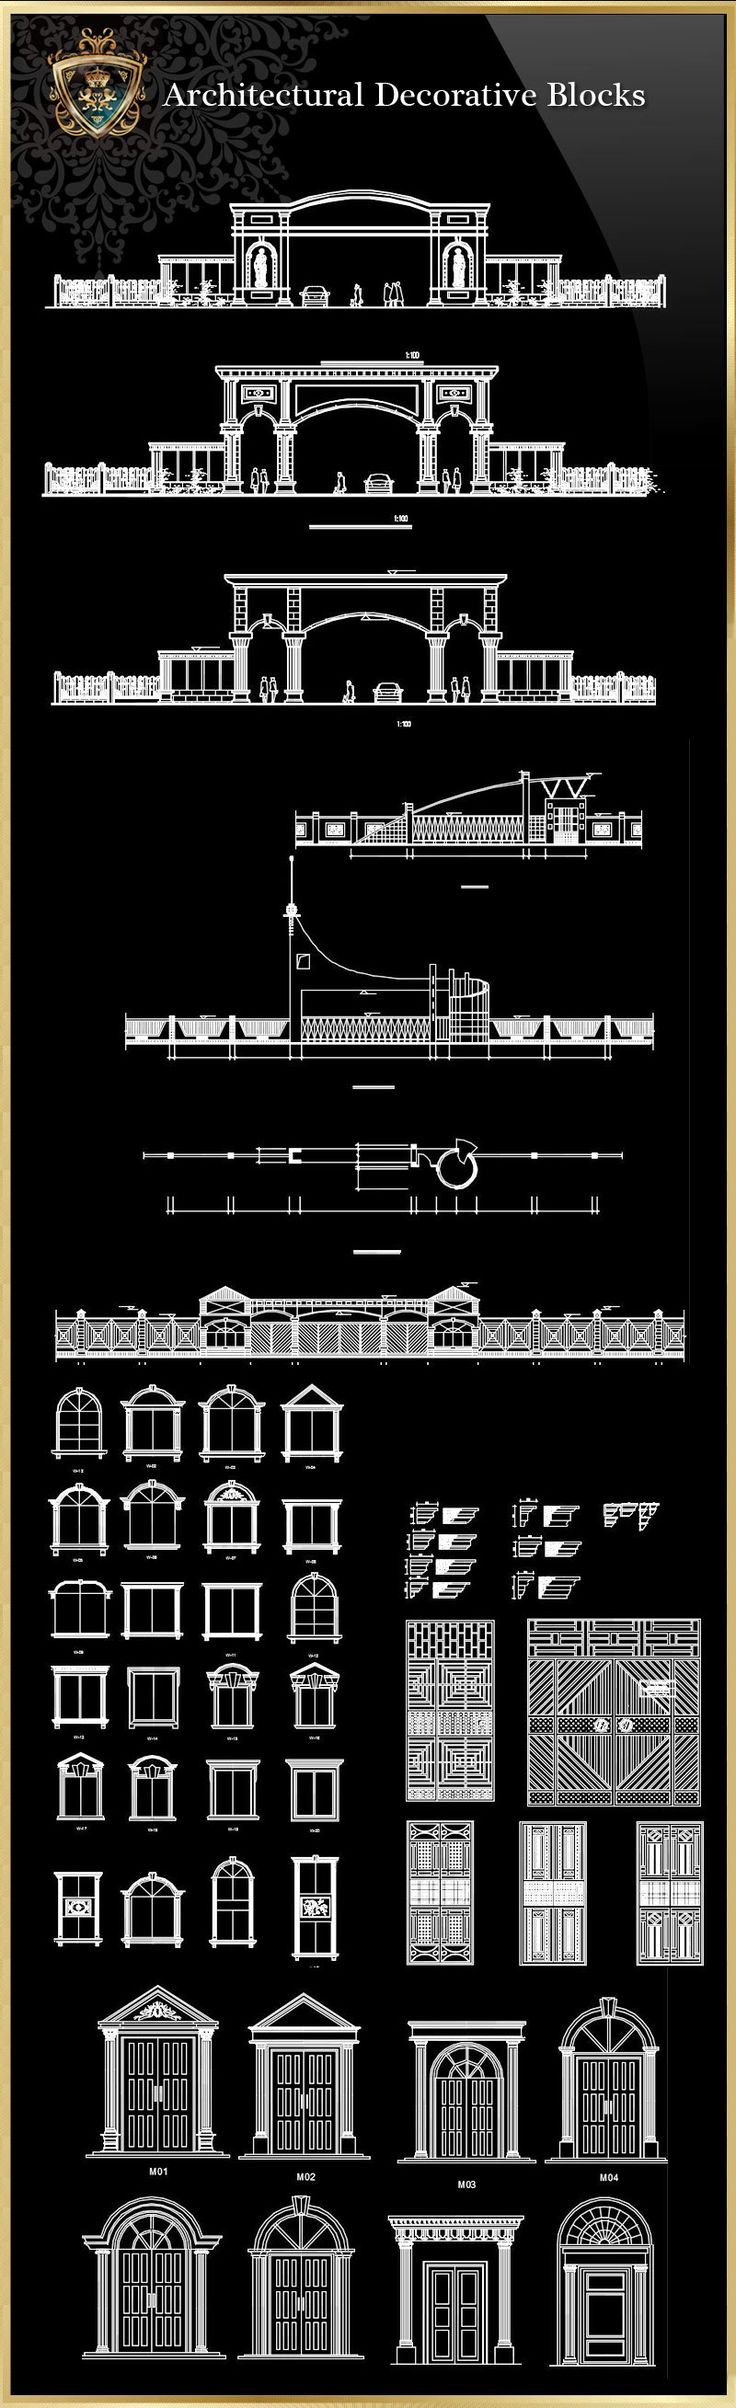 Architectural decorative blocks Ornamental Parts ,Balusters,Newels,Knuckles,Baskets,Wrought,Iron Rings  The .DWG files are compatible back to AutoCAD 2000. These AutoCAD drawings are available …